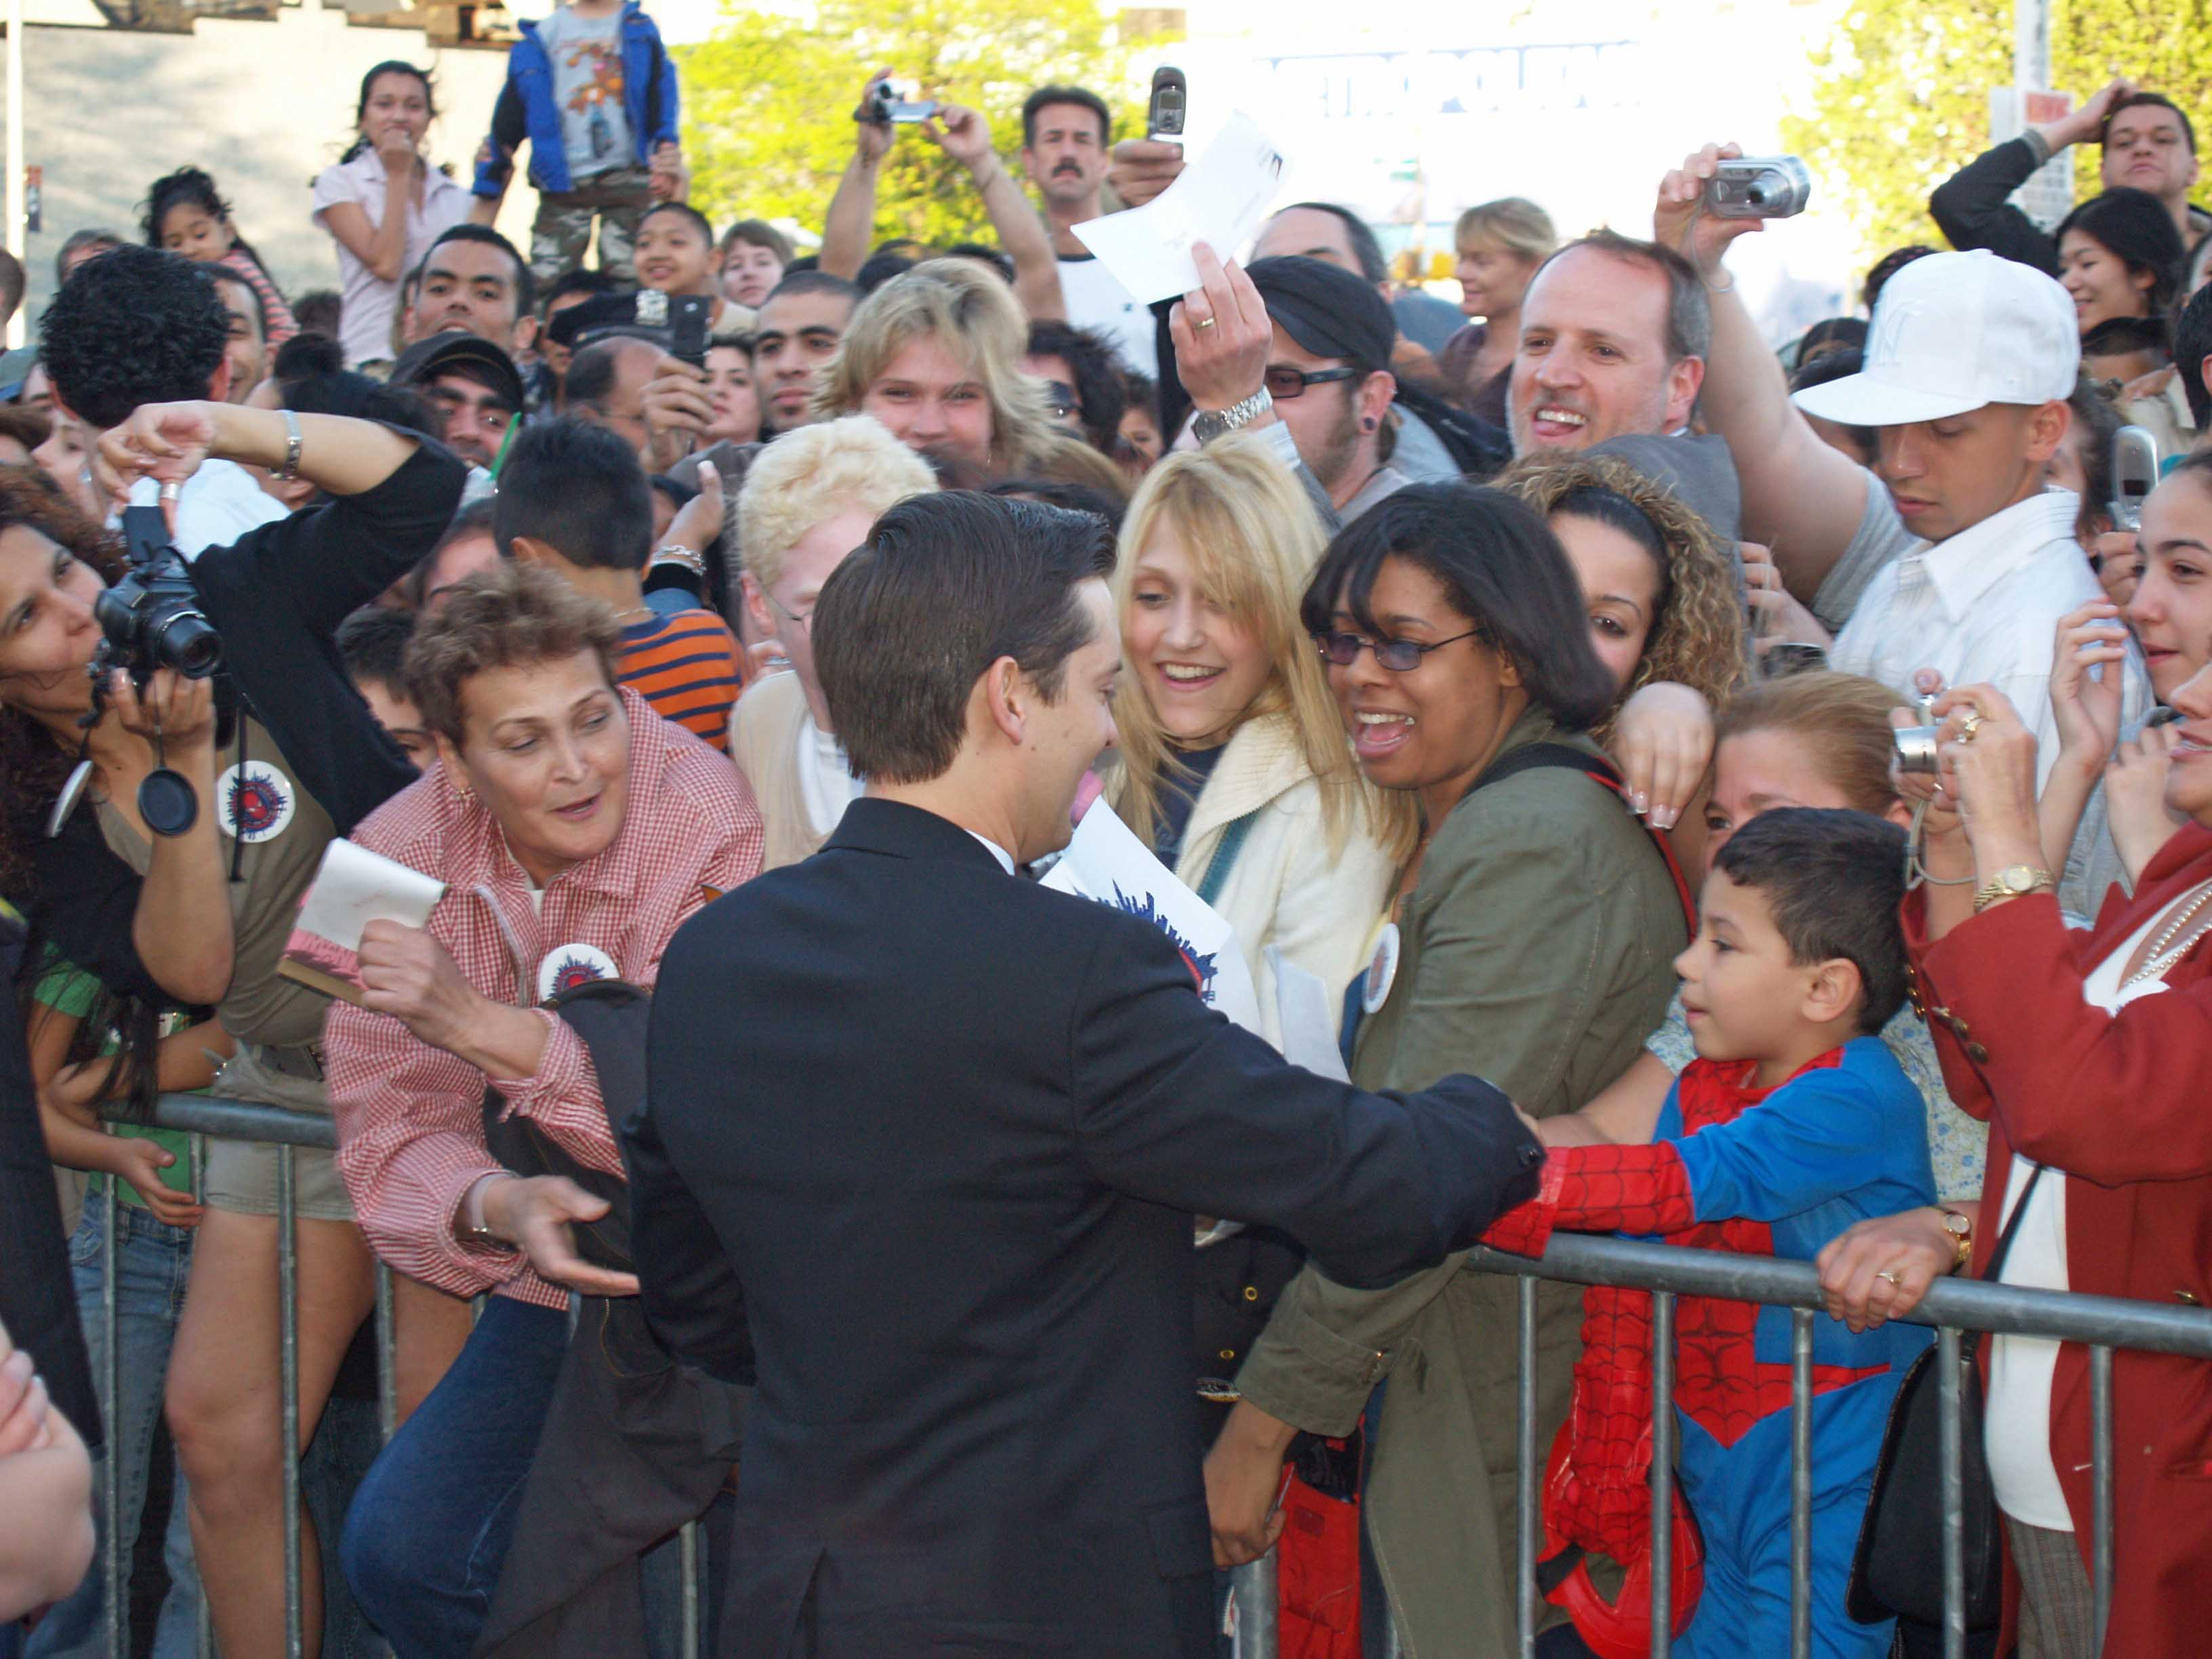 tobey-maguire-greets-fans-at-spiderman-3-by-david-shankbone